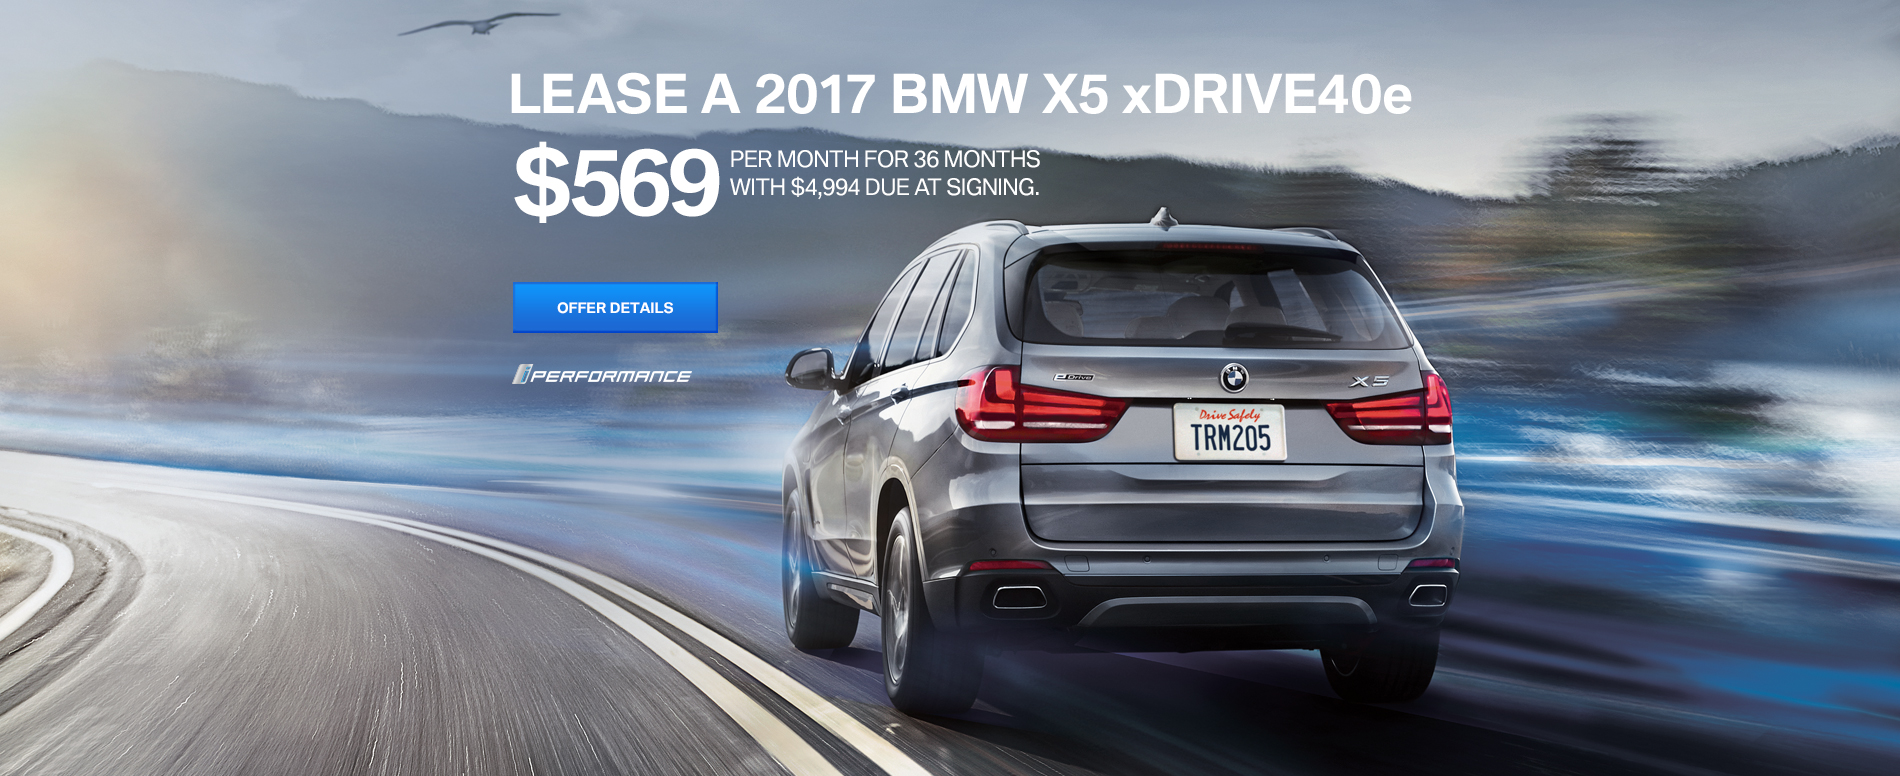 LEASE A 2017 BMW X5 xDRIVE40e $569 /MO FOR 36 MONTHS